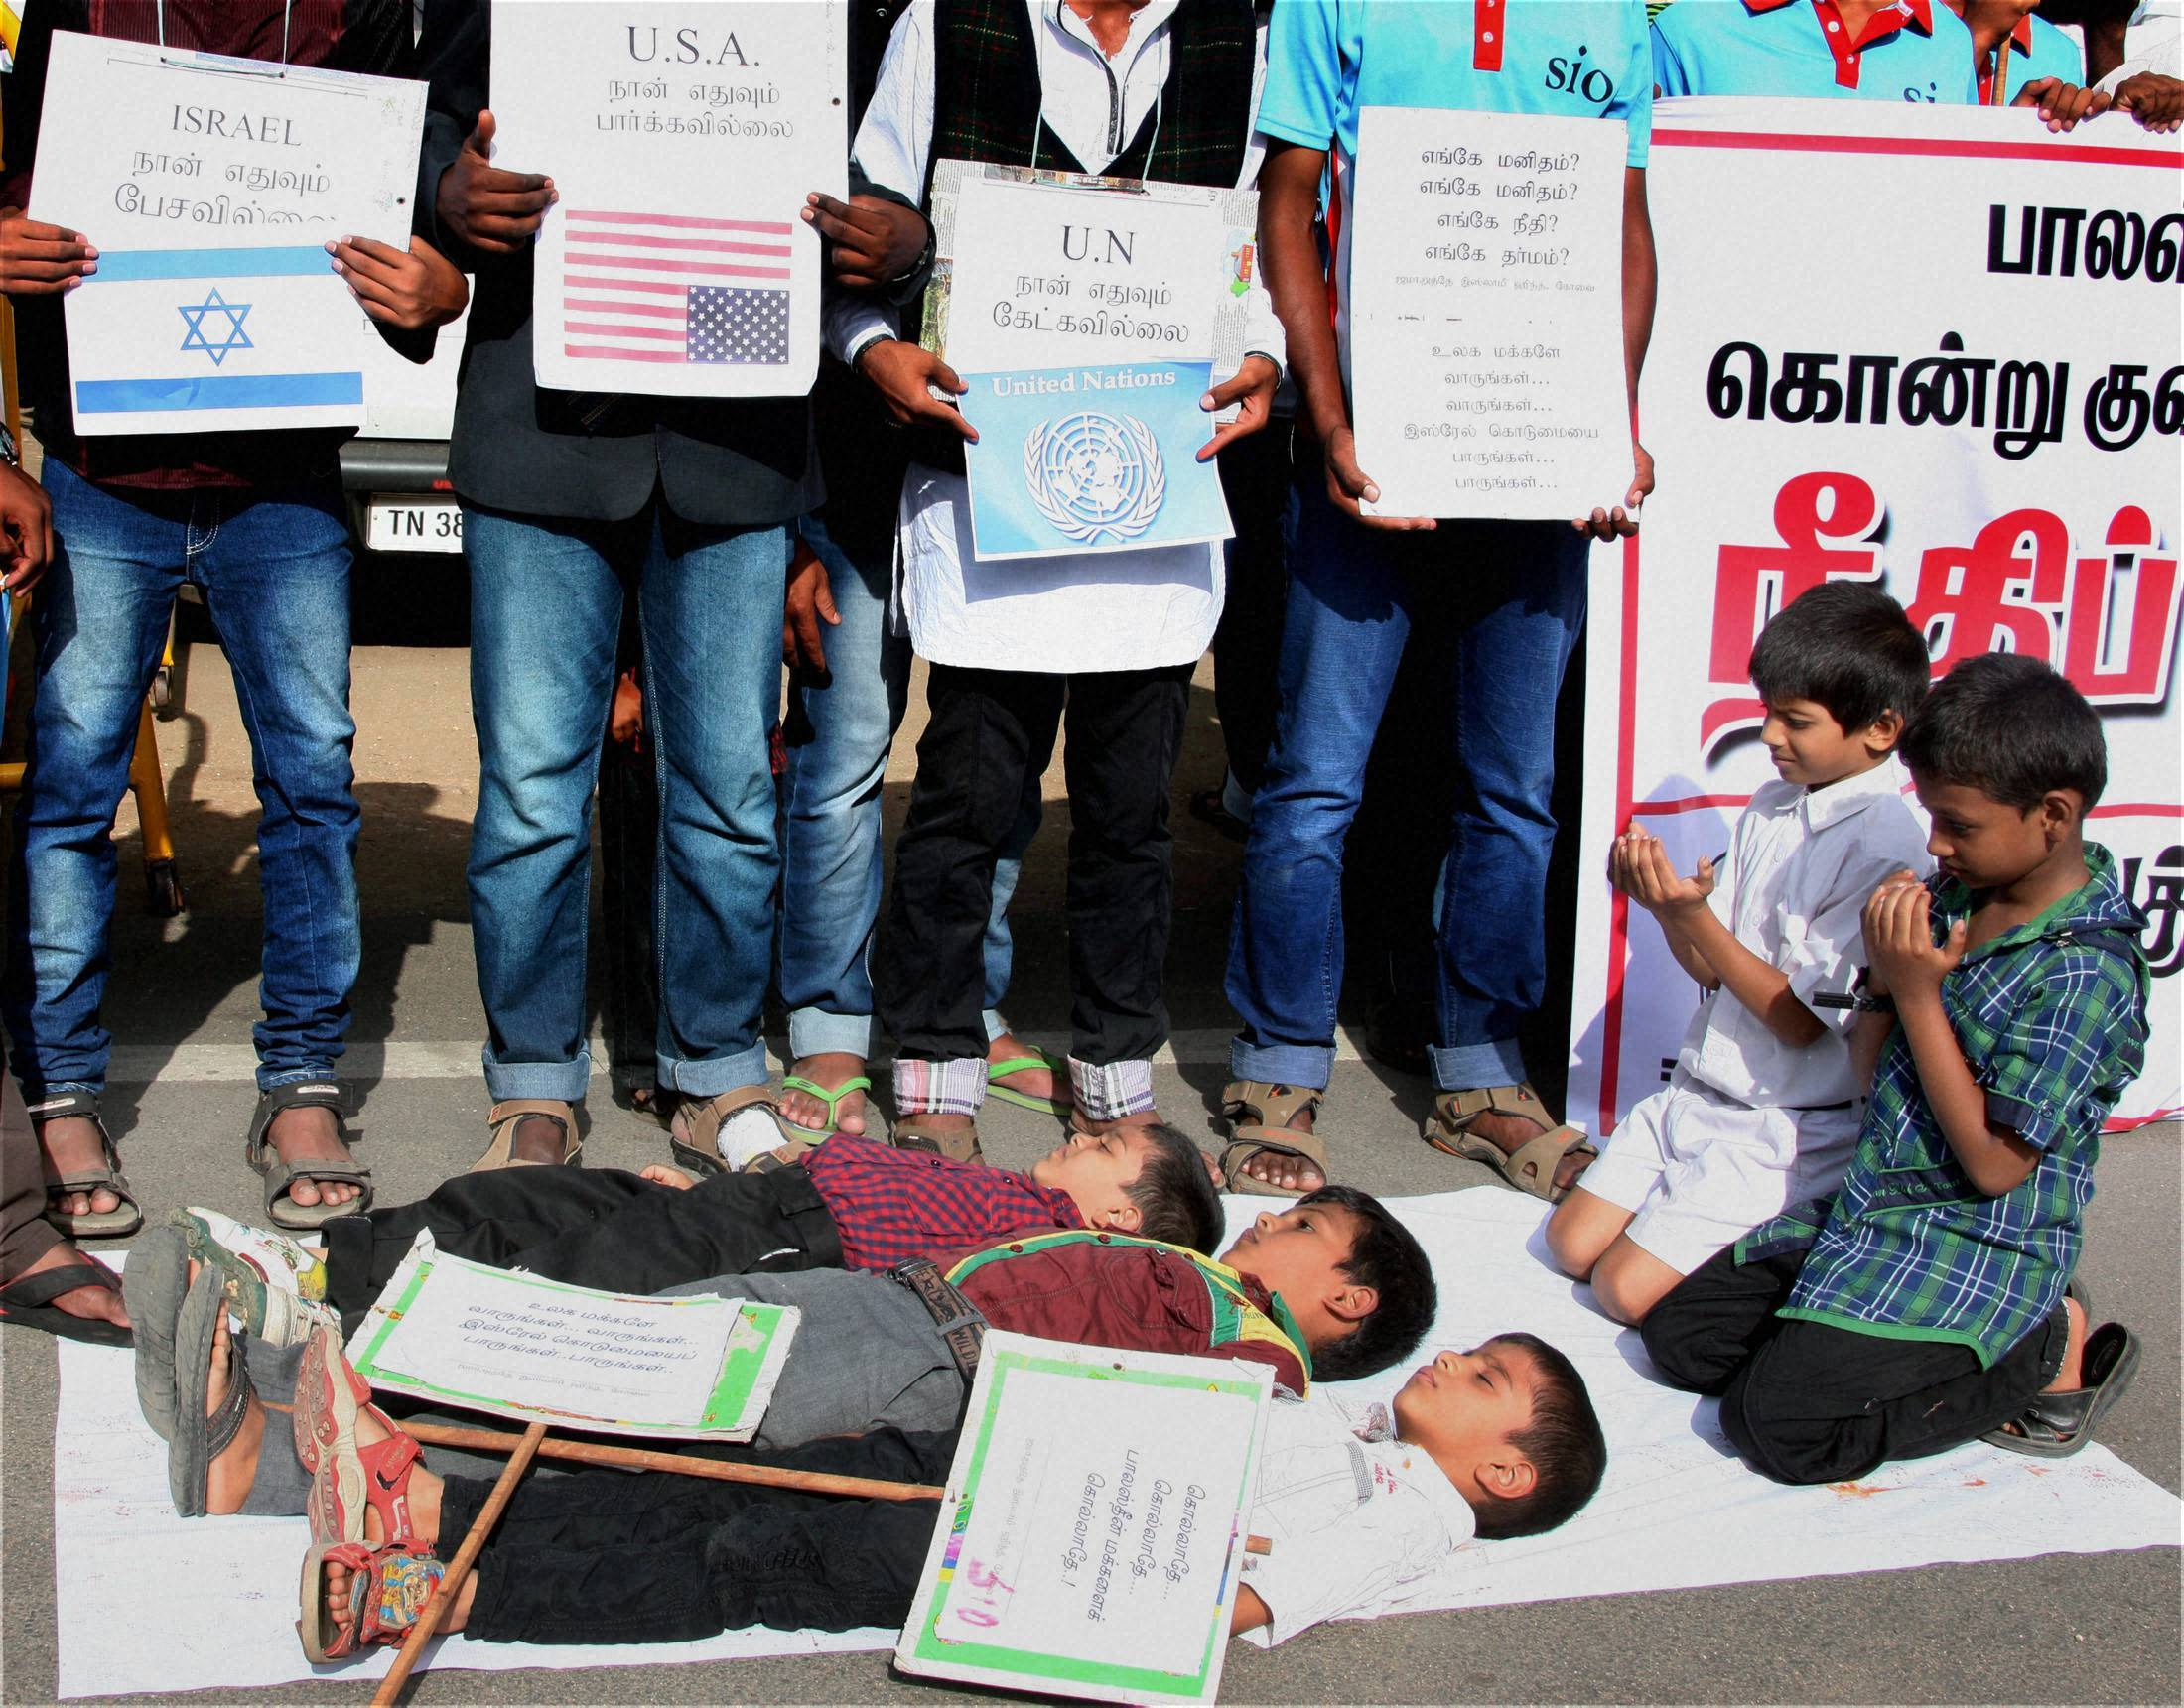 Activists, Jamaat-e-Islami Hind, protest against, military operations, Gaza, Coimbatore